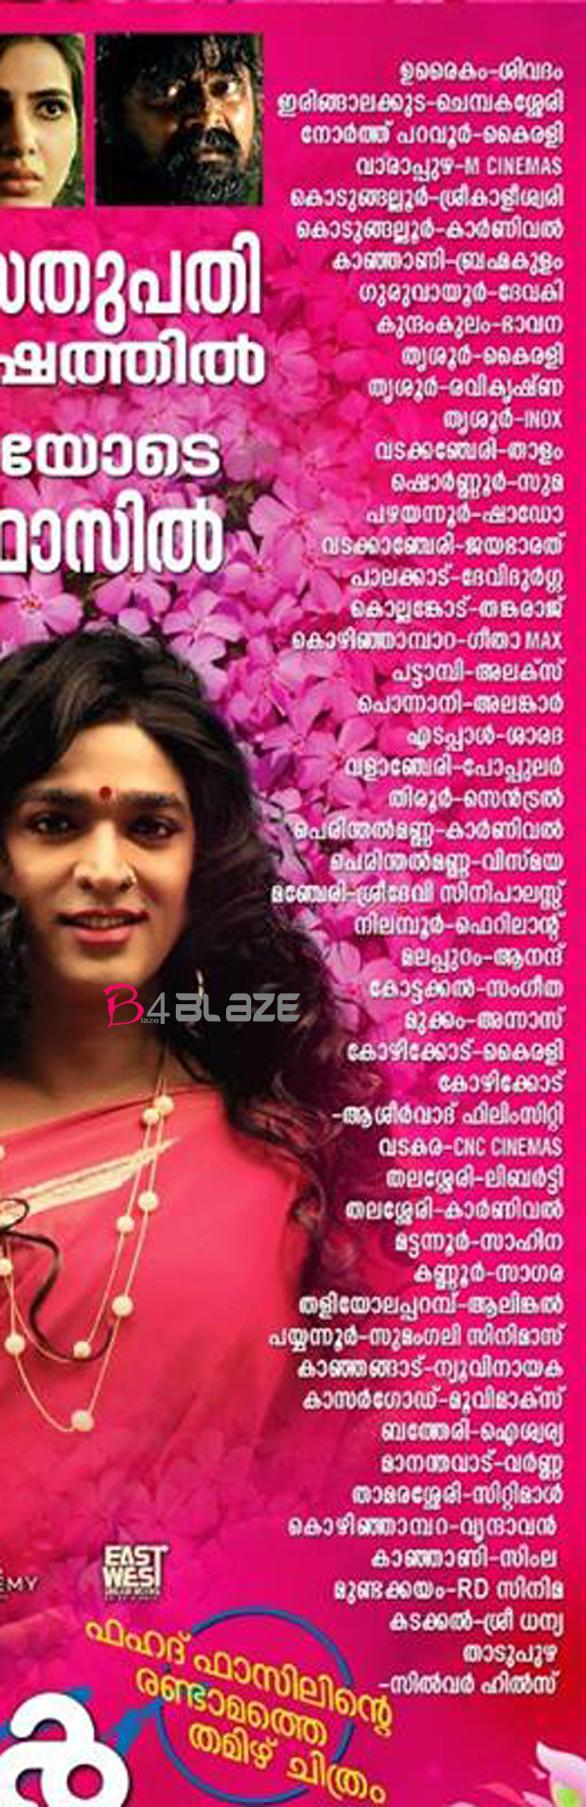 Super Deluxe Movie Theatre List in Kerala